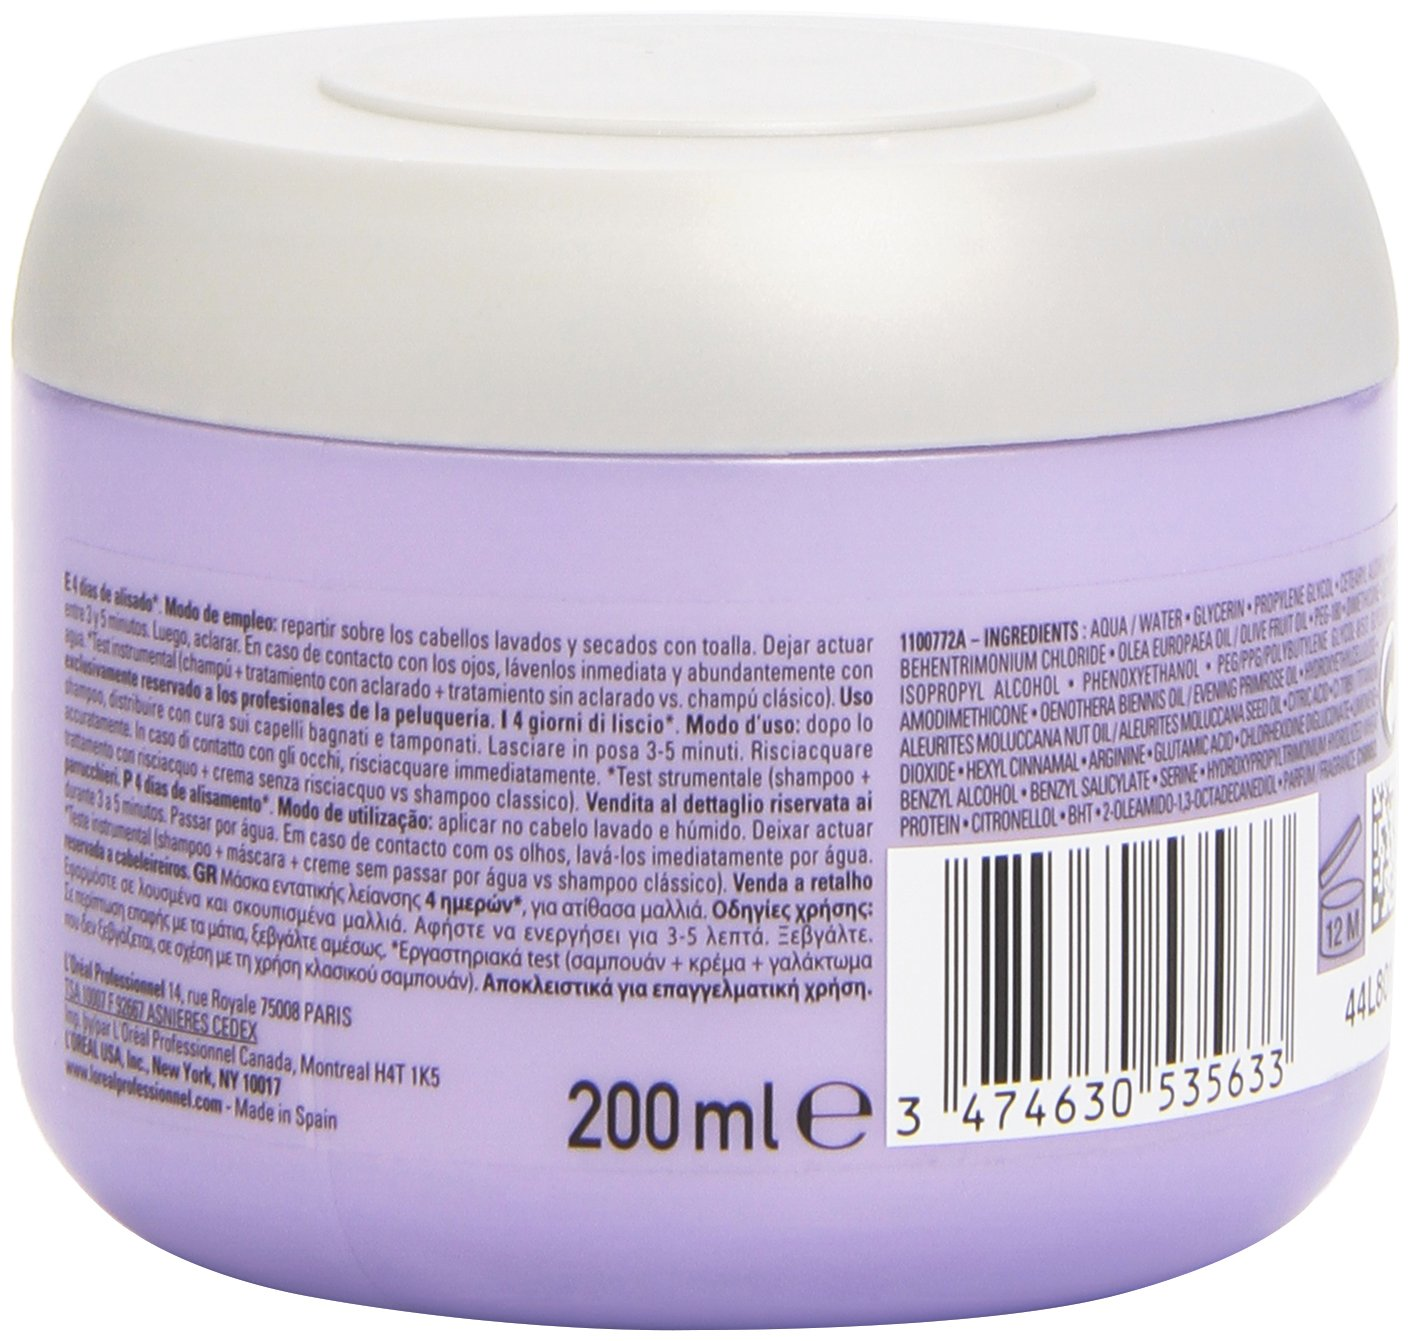 Amazon.com : LOreal Liss Unlimited Keratinoil Complex Mask for Unisex, 6.7 Ounce : A : Beauty